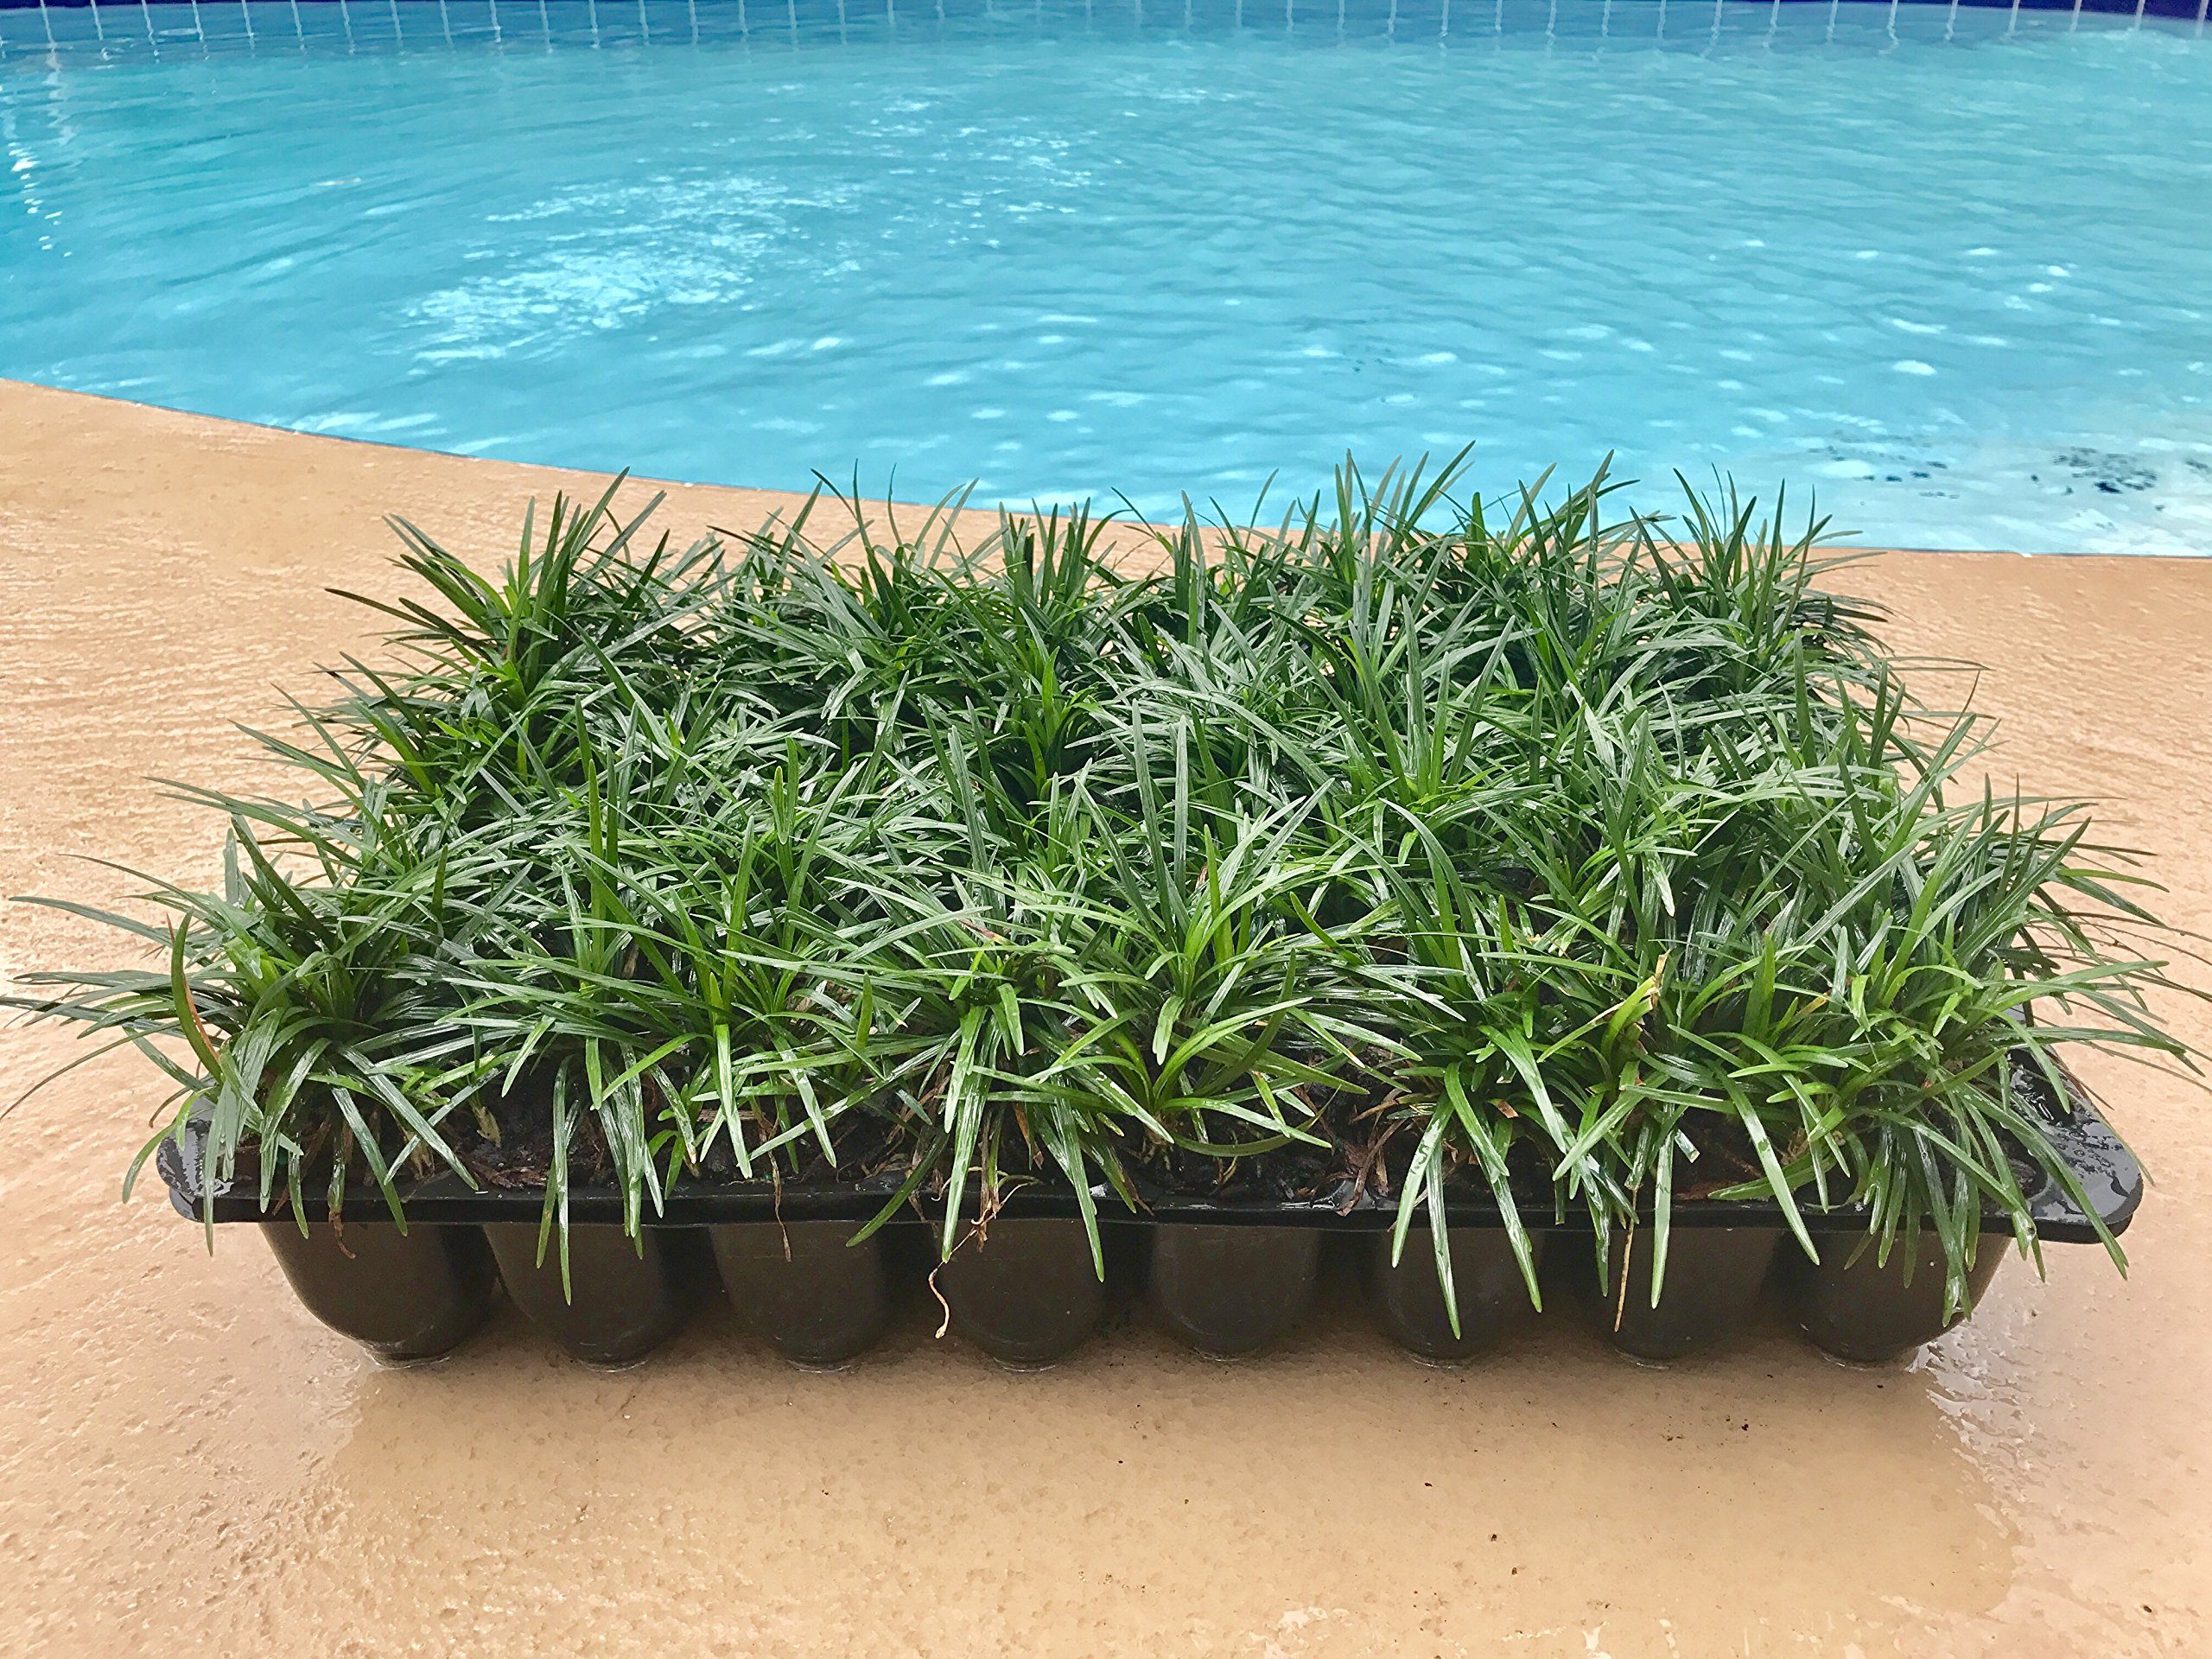 Dwarf Mondo Grass Qty 72 Live Plants Shade Loving Groundcover by Florida Foliage (Image #1)